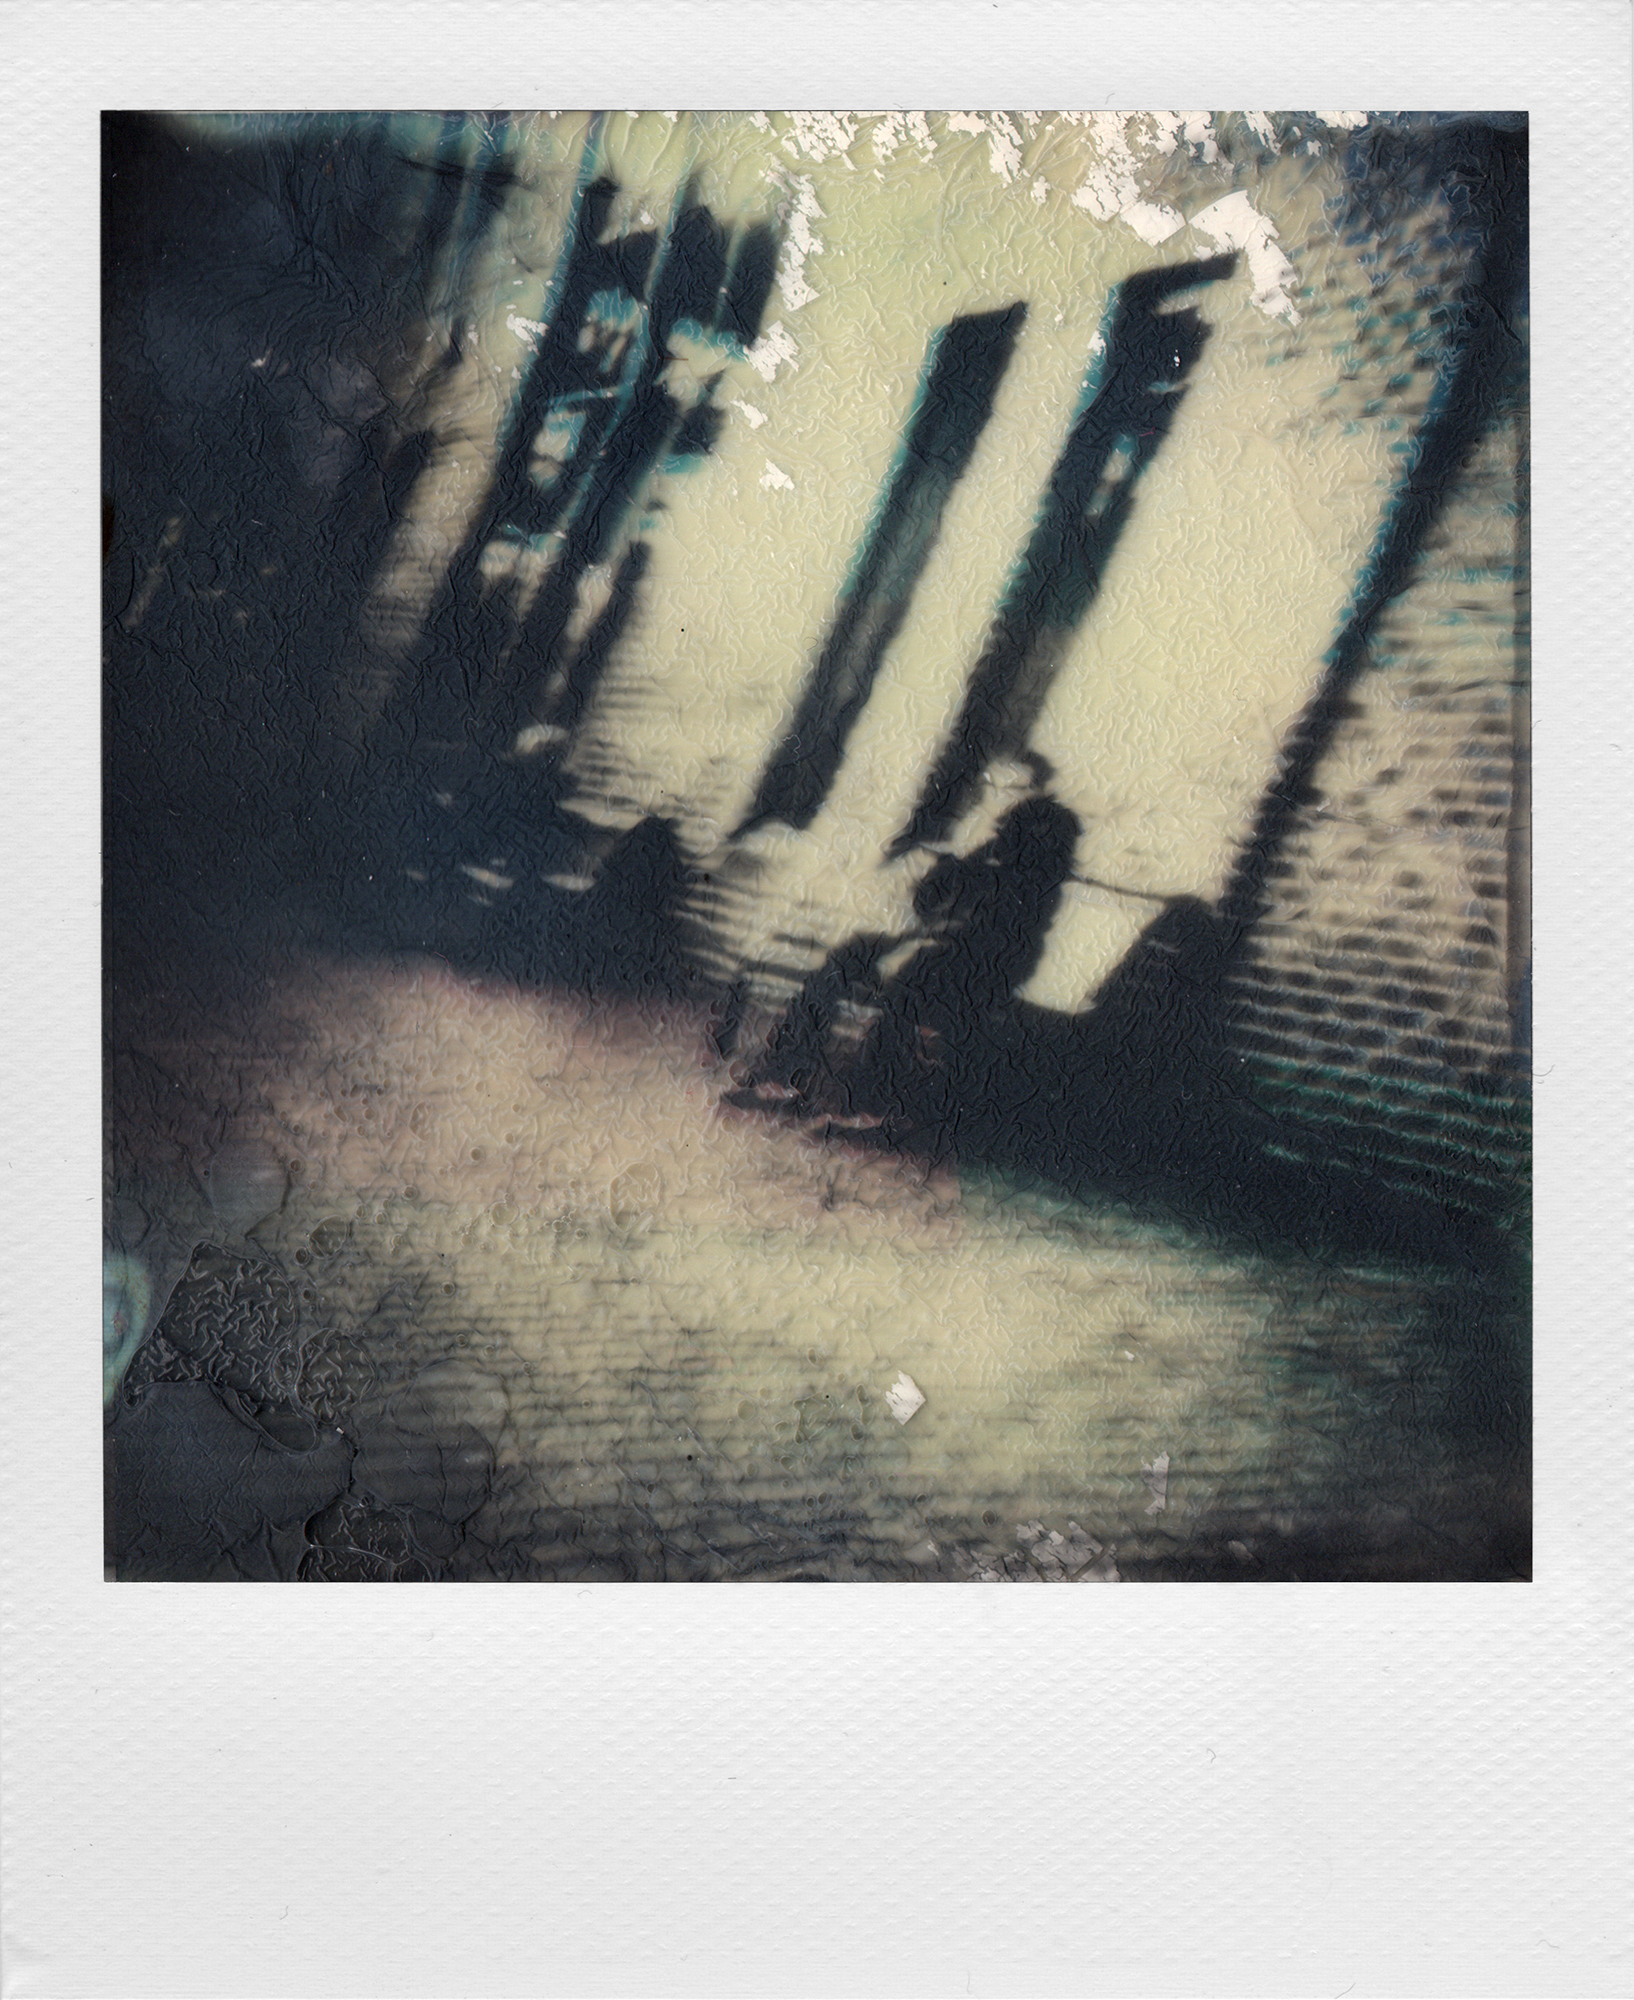 Espressionismo | Impossible Project Instant Lab | Impossible Project 600 BW | Claudio Gomboli | @caglom